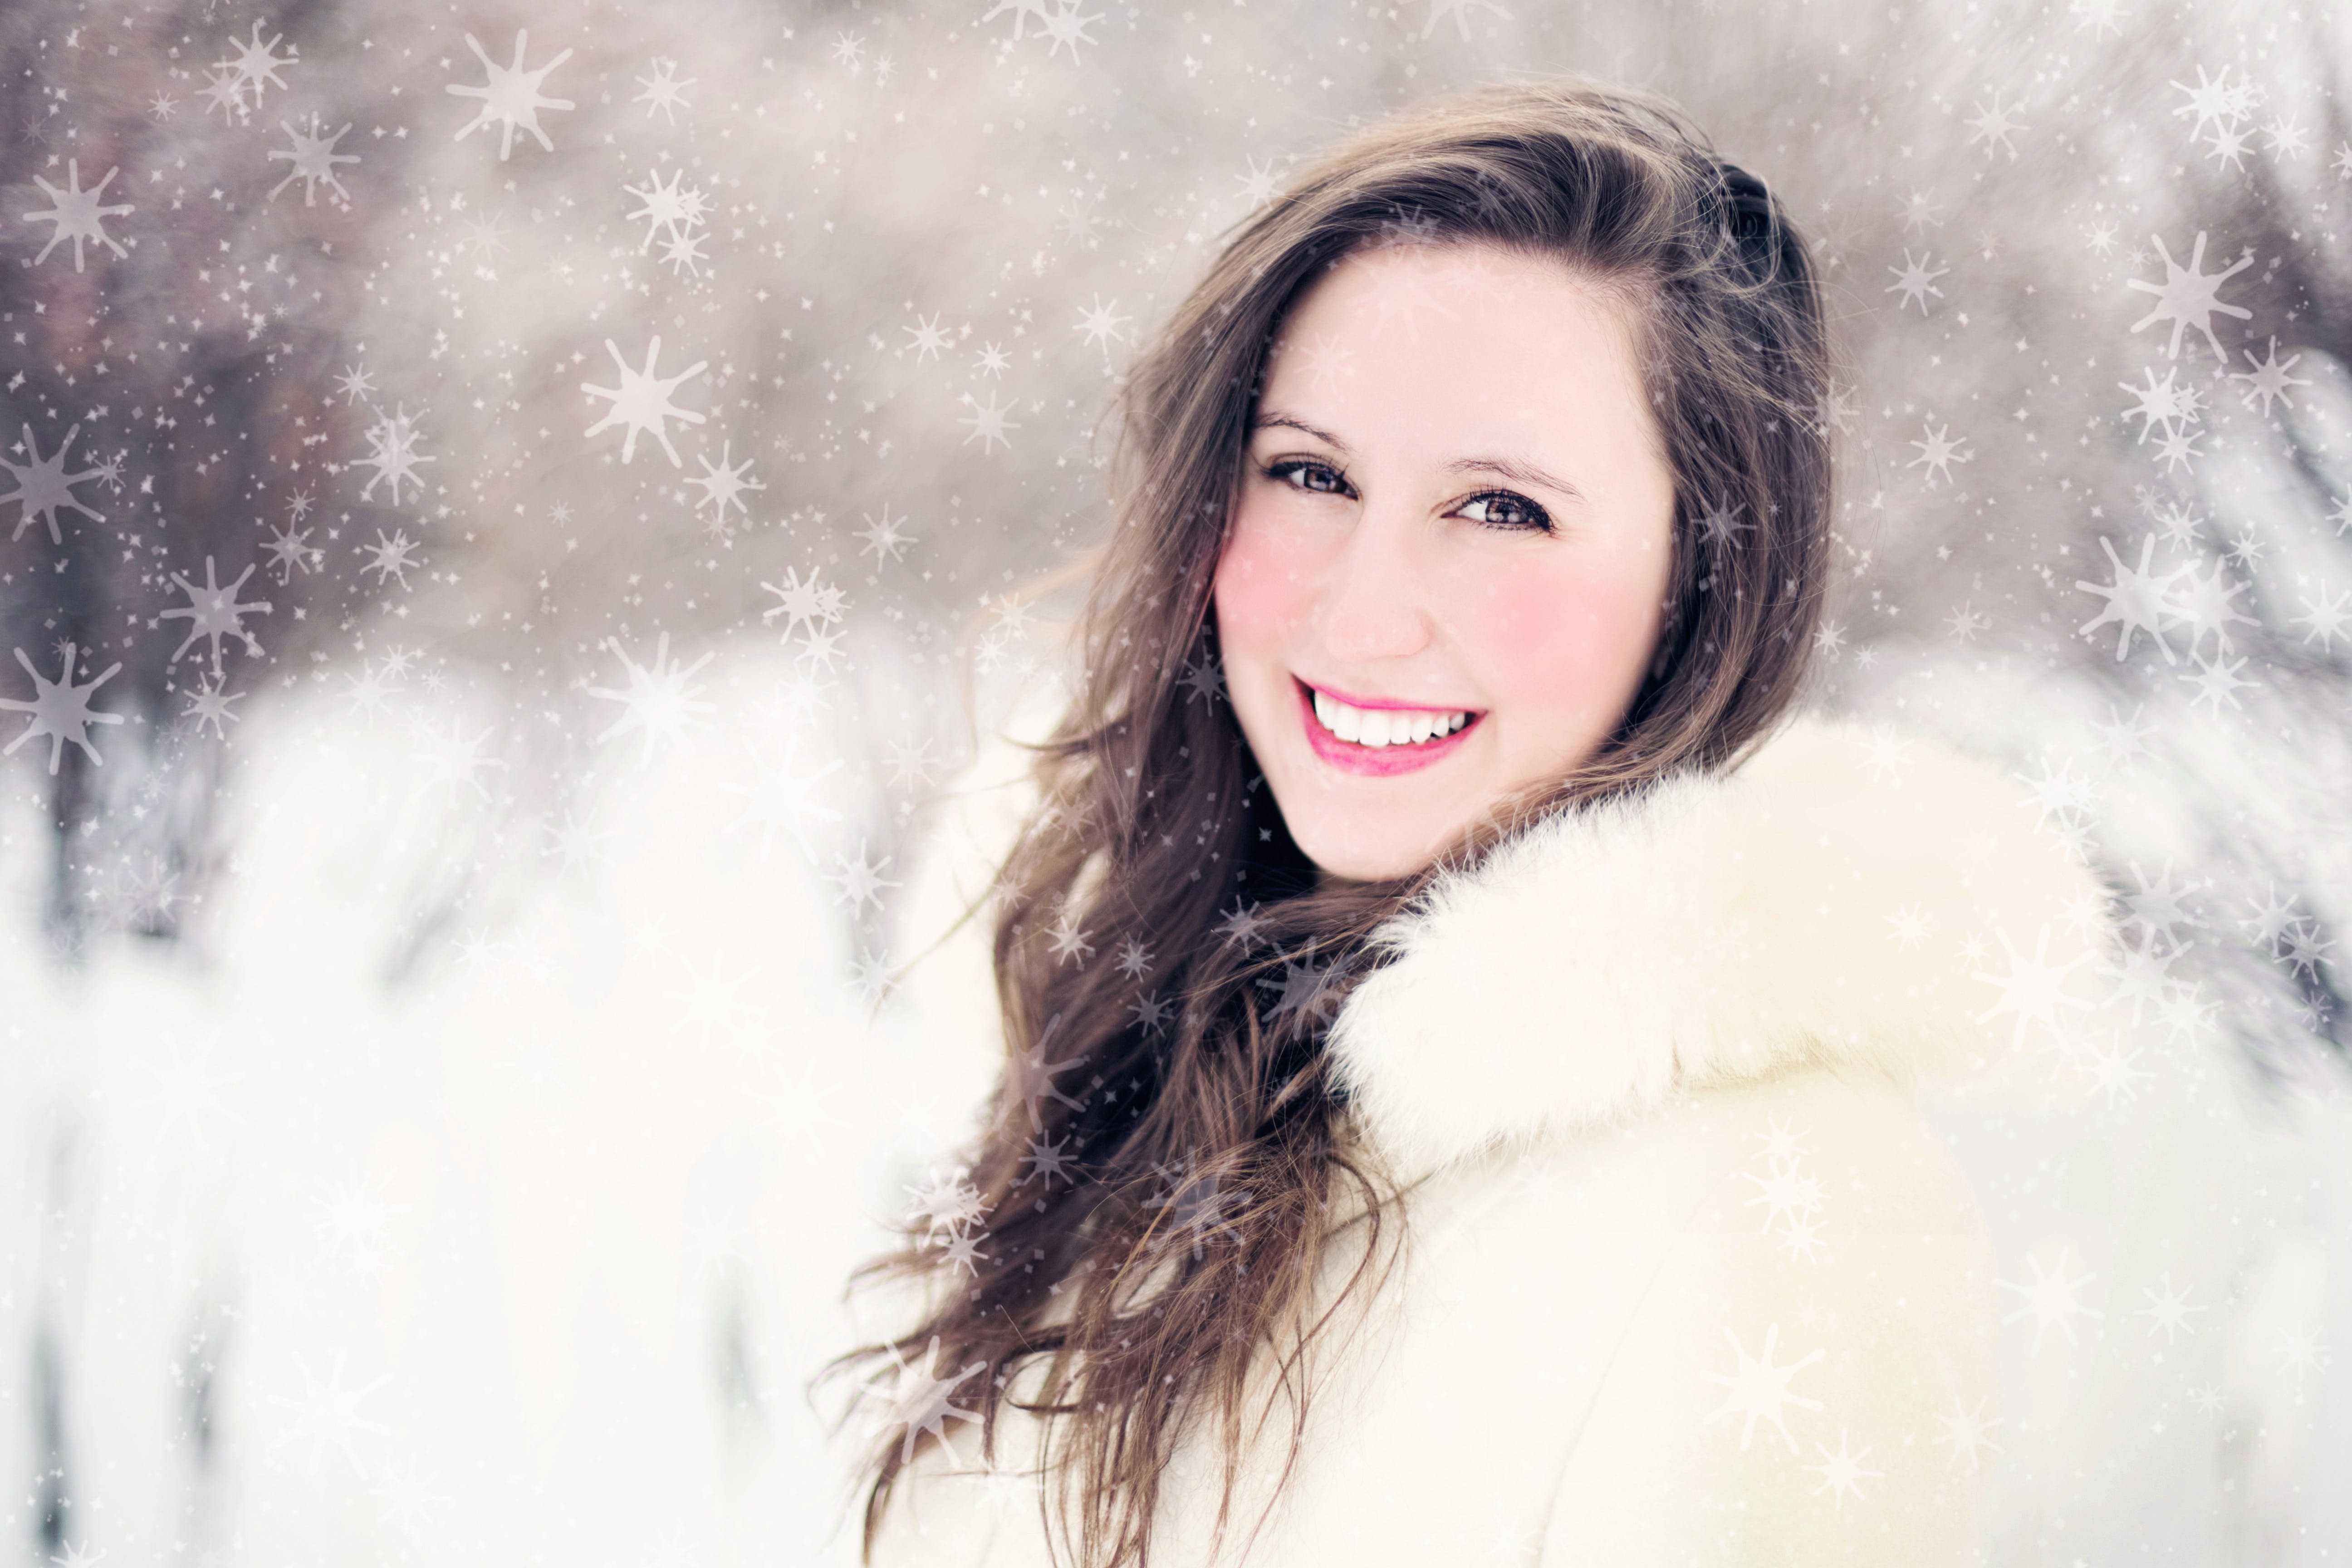 Woman in White Furred Jacket Smiling in Front